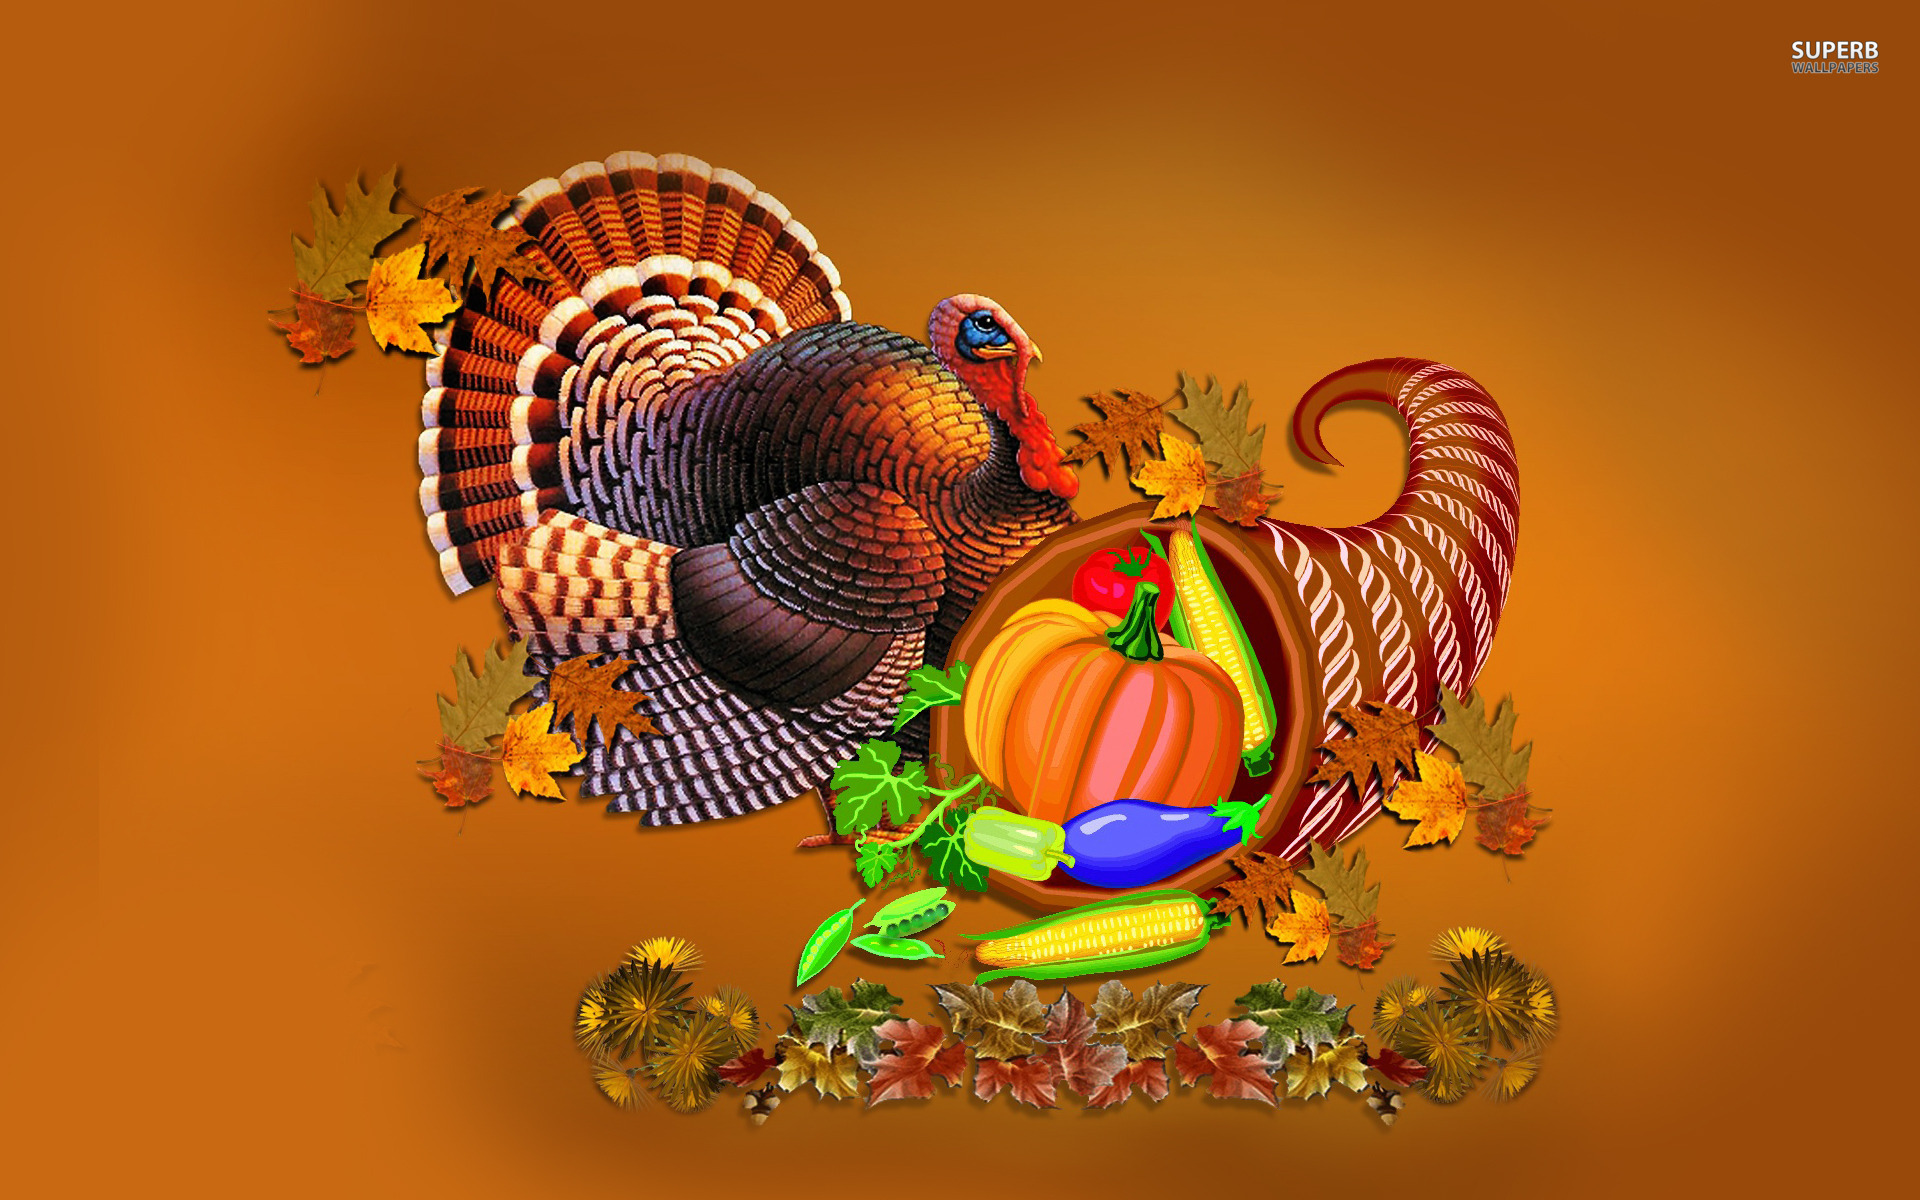 1920x1080 thanksgiving wallpaper: Thanksgiving HD Wallpapers 1920x1200